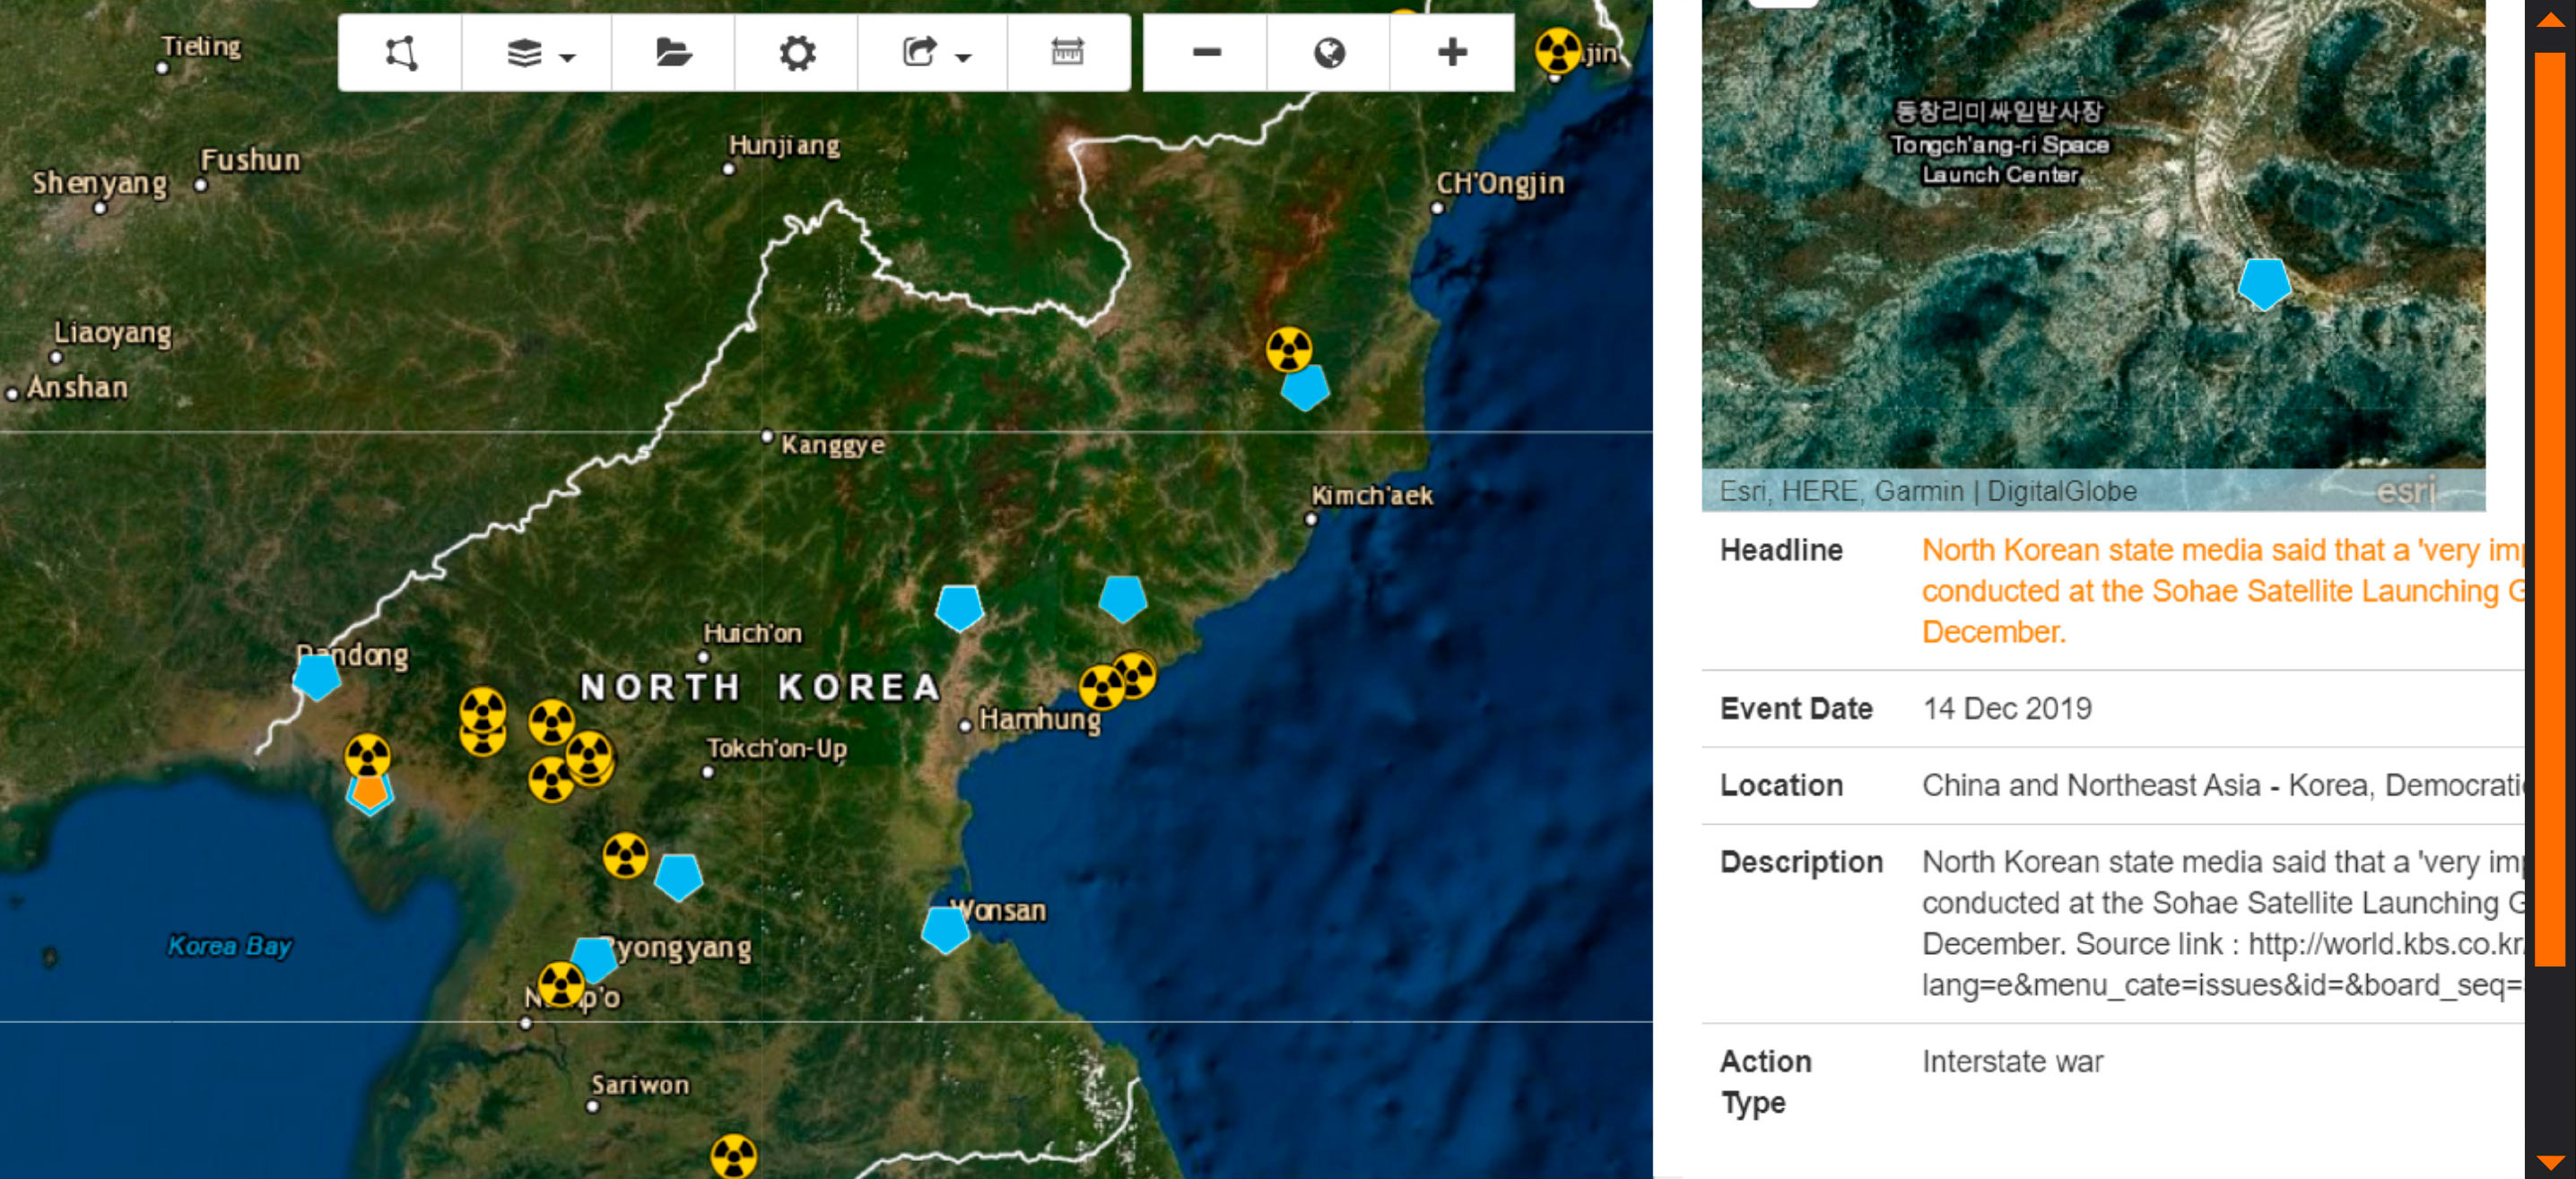 image of military geospatial events database